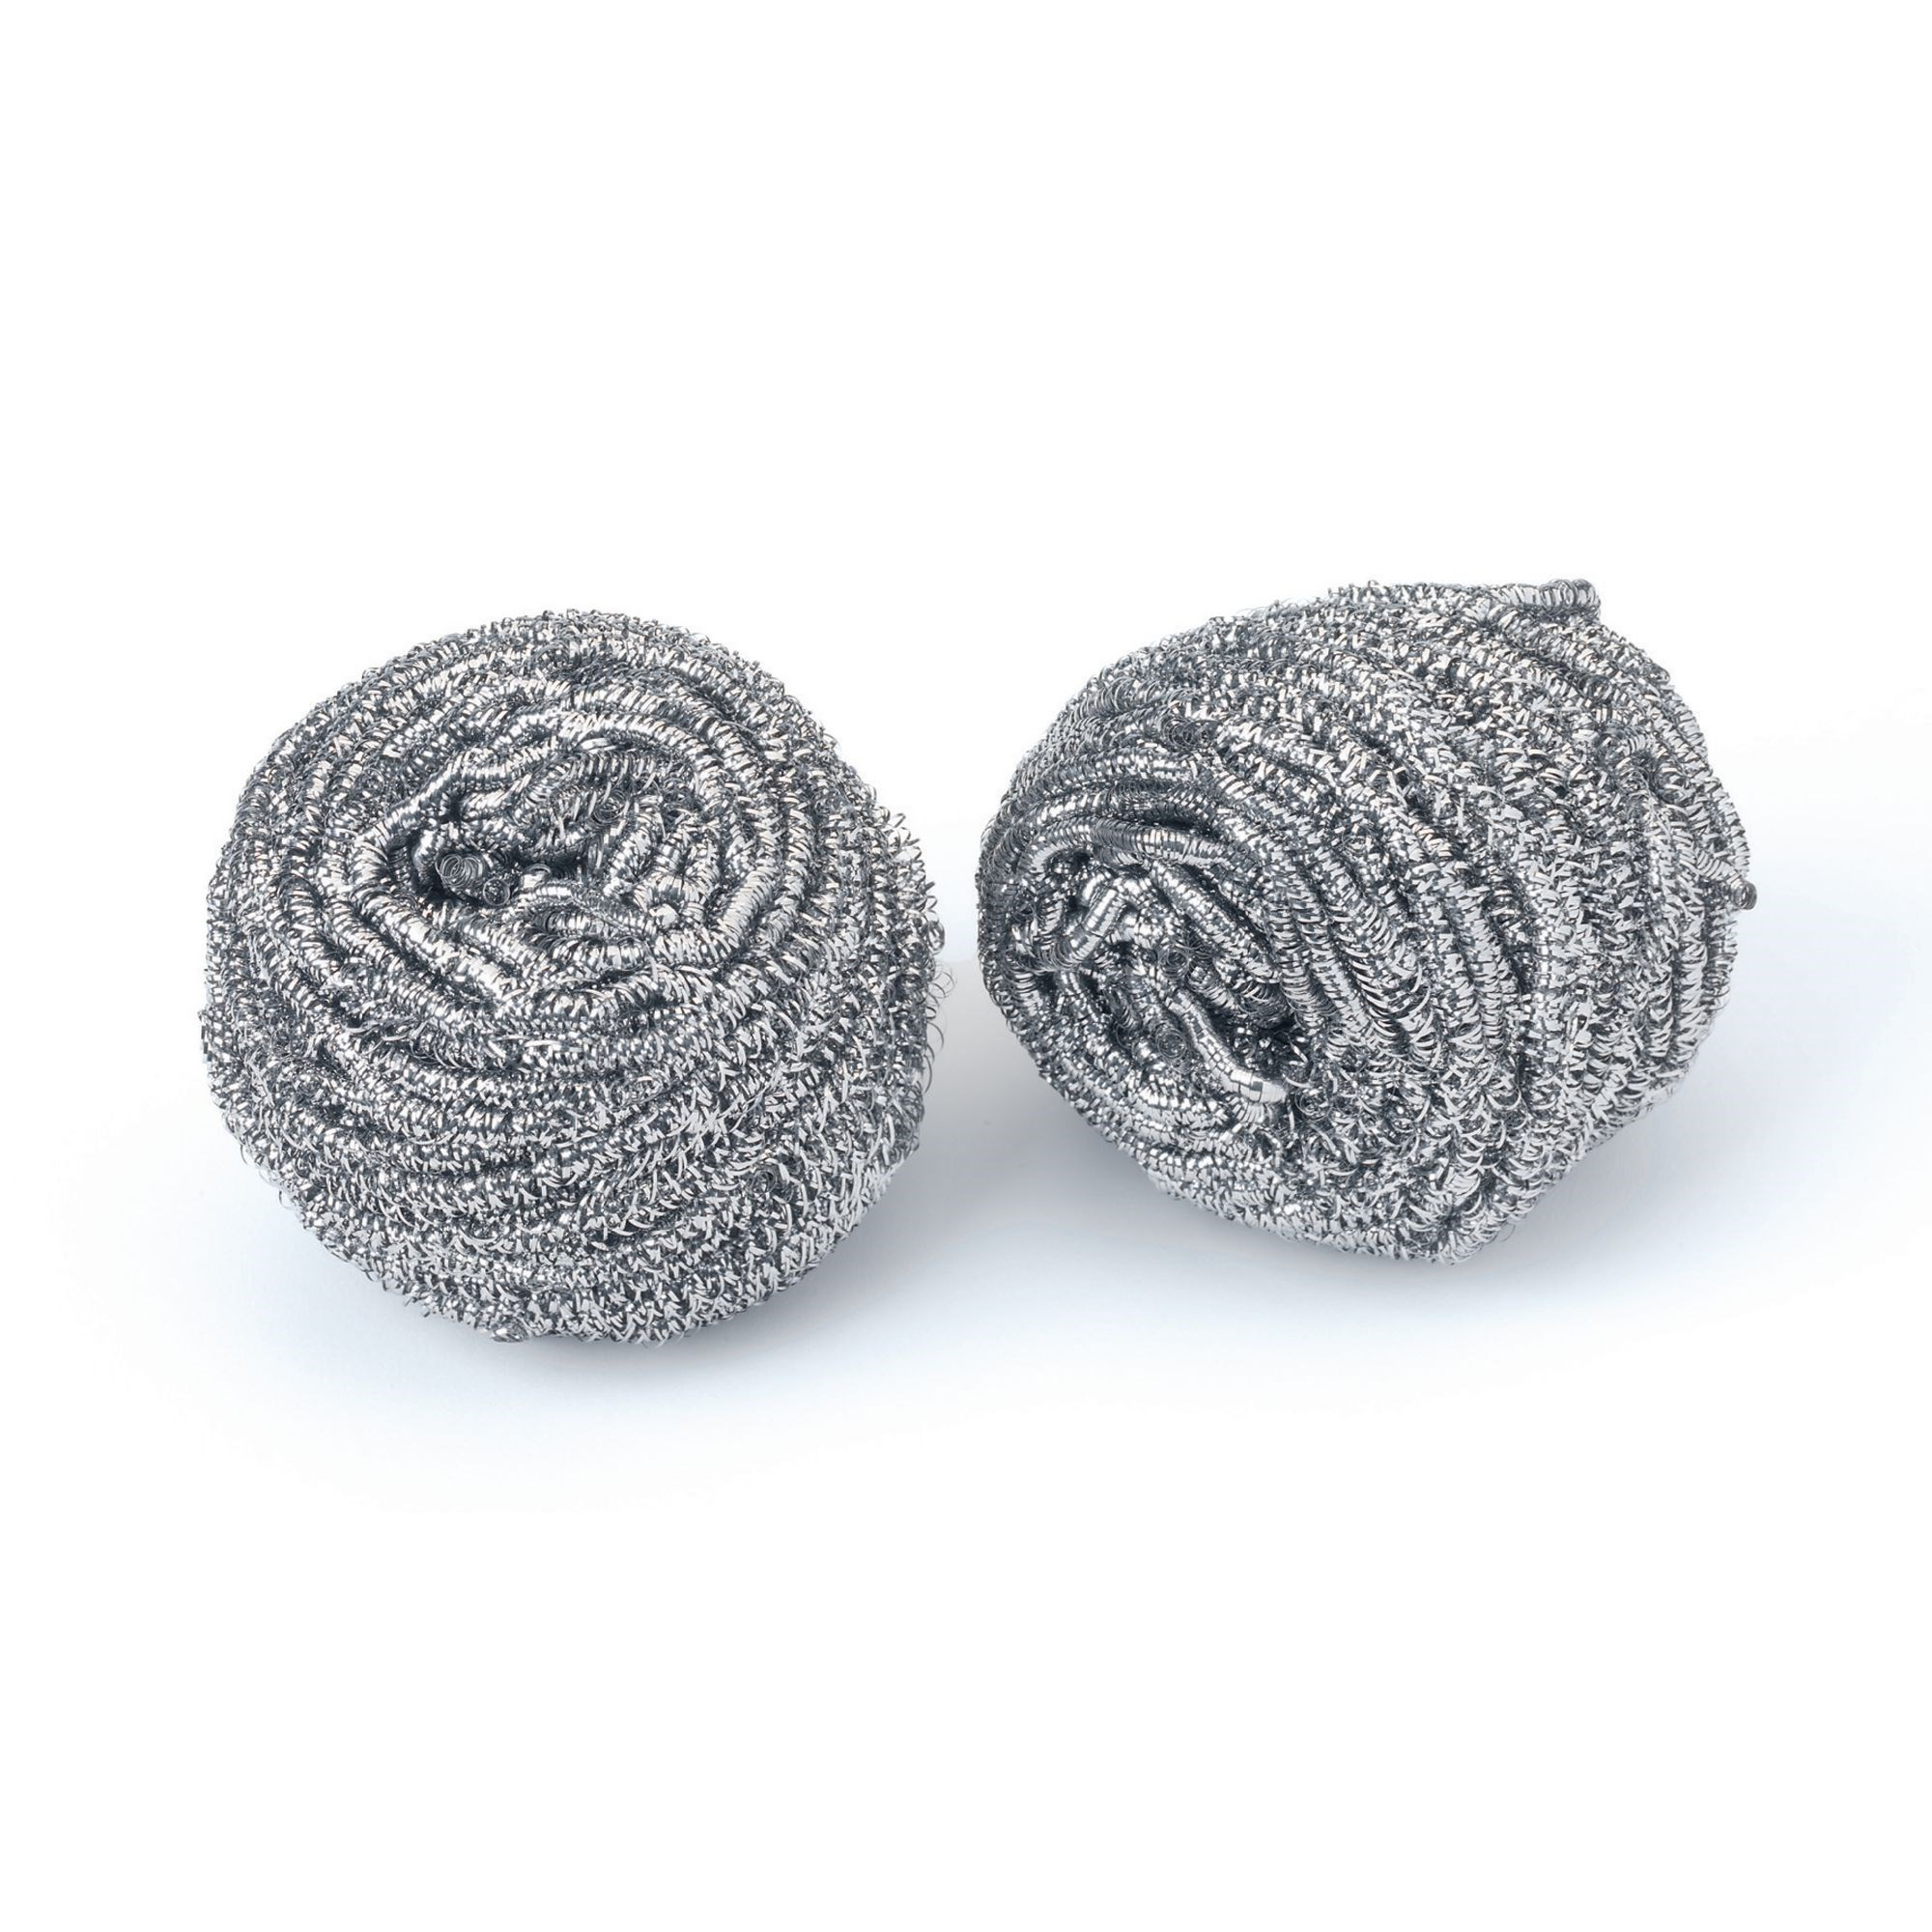 Stainless Steel Scourer (Pack of 2)